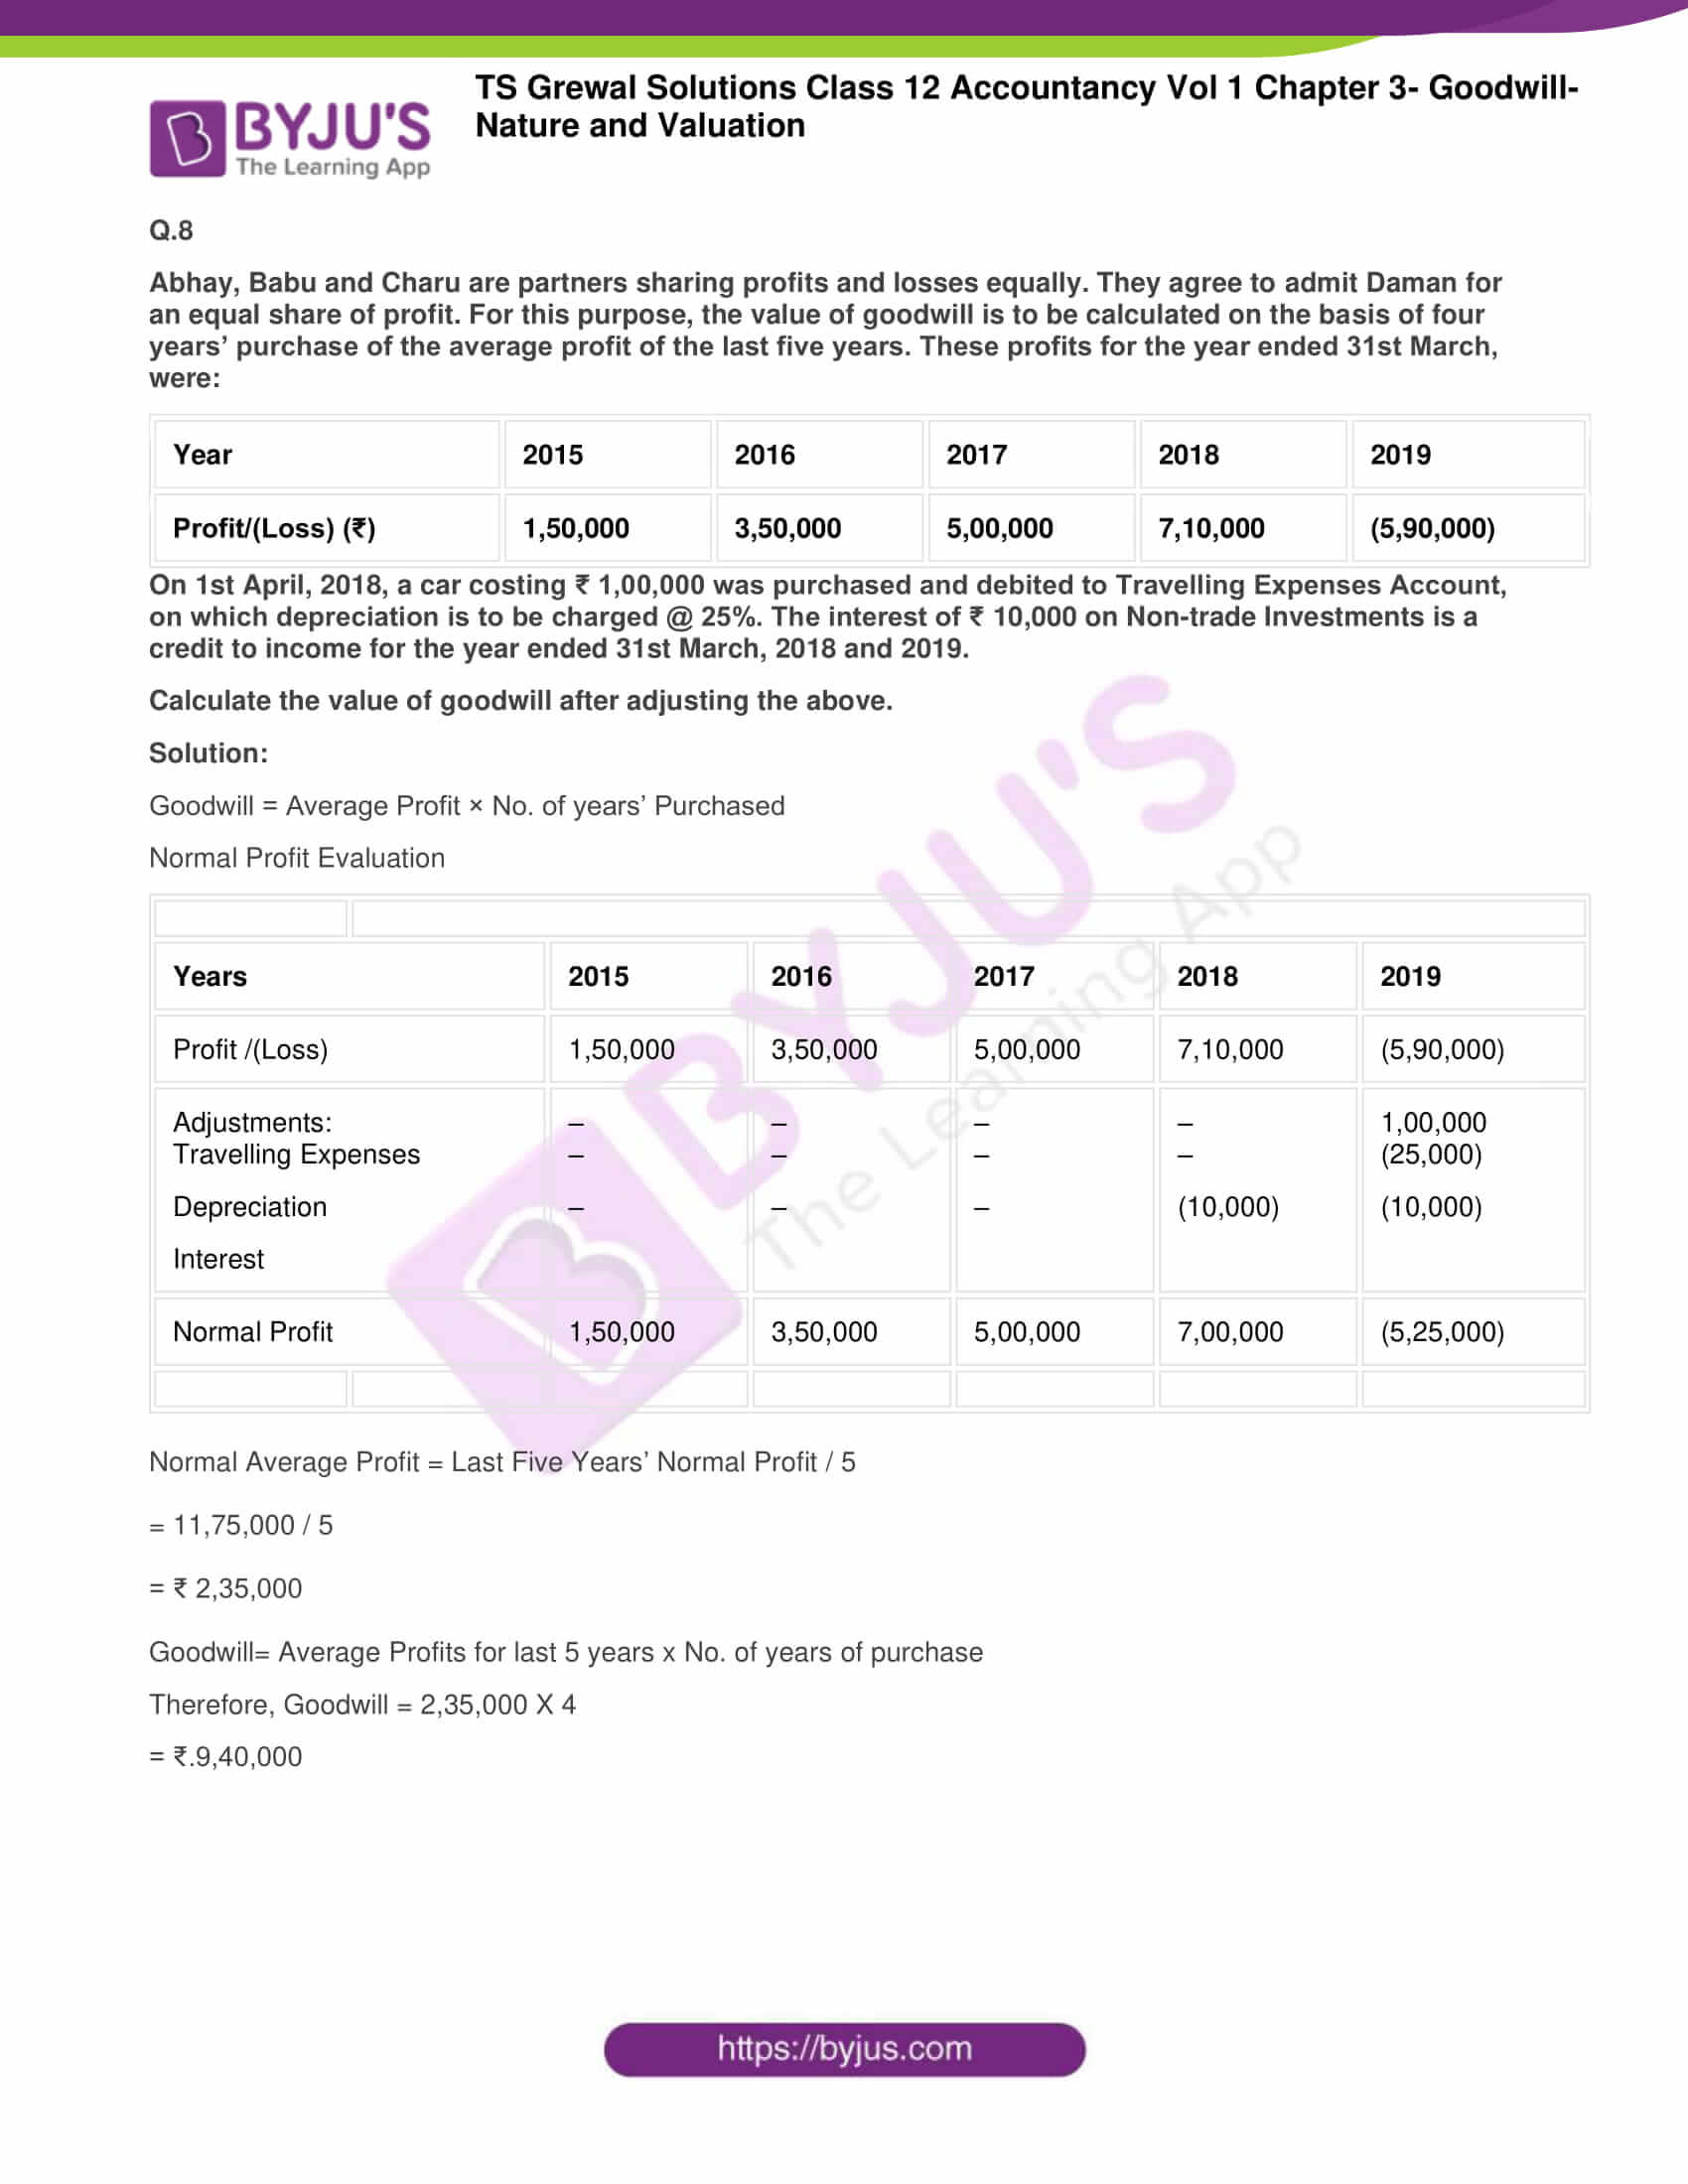 ts grewal solutions for class 12 accountancy vol 1 chapter 306